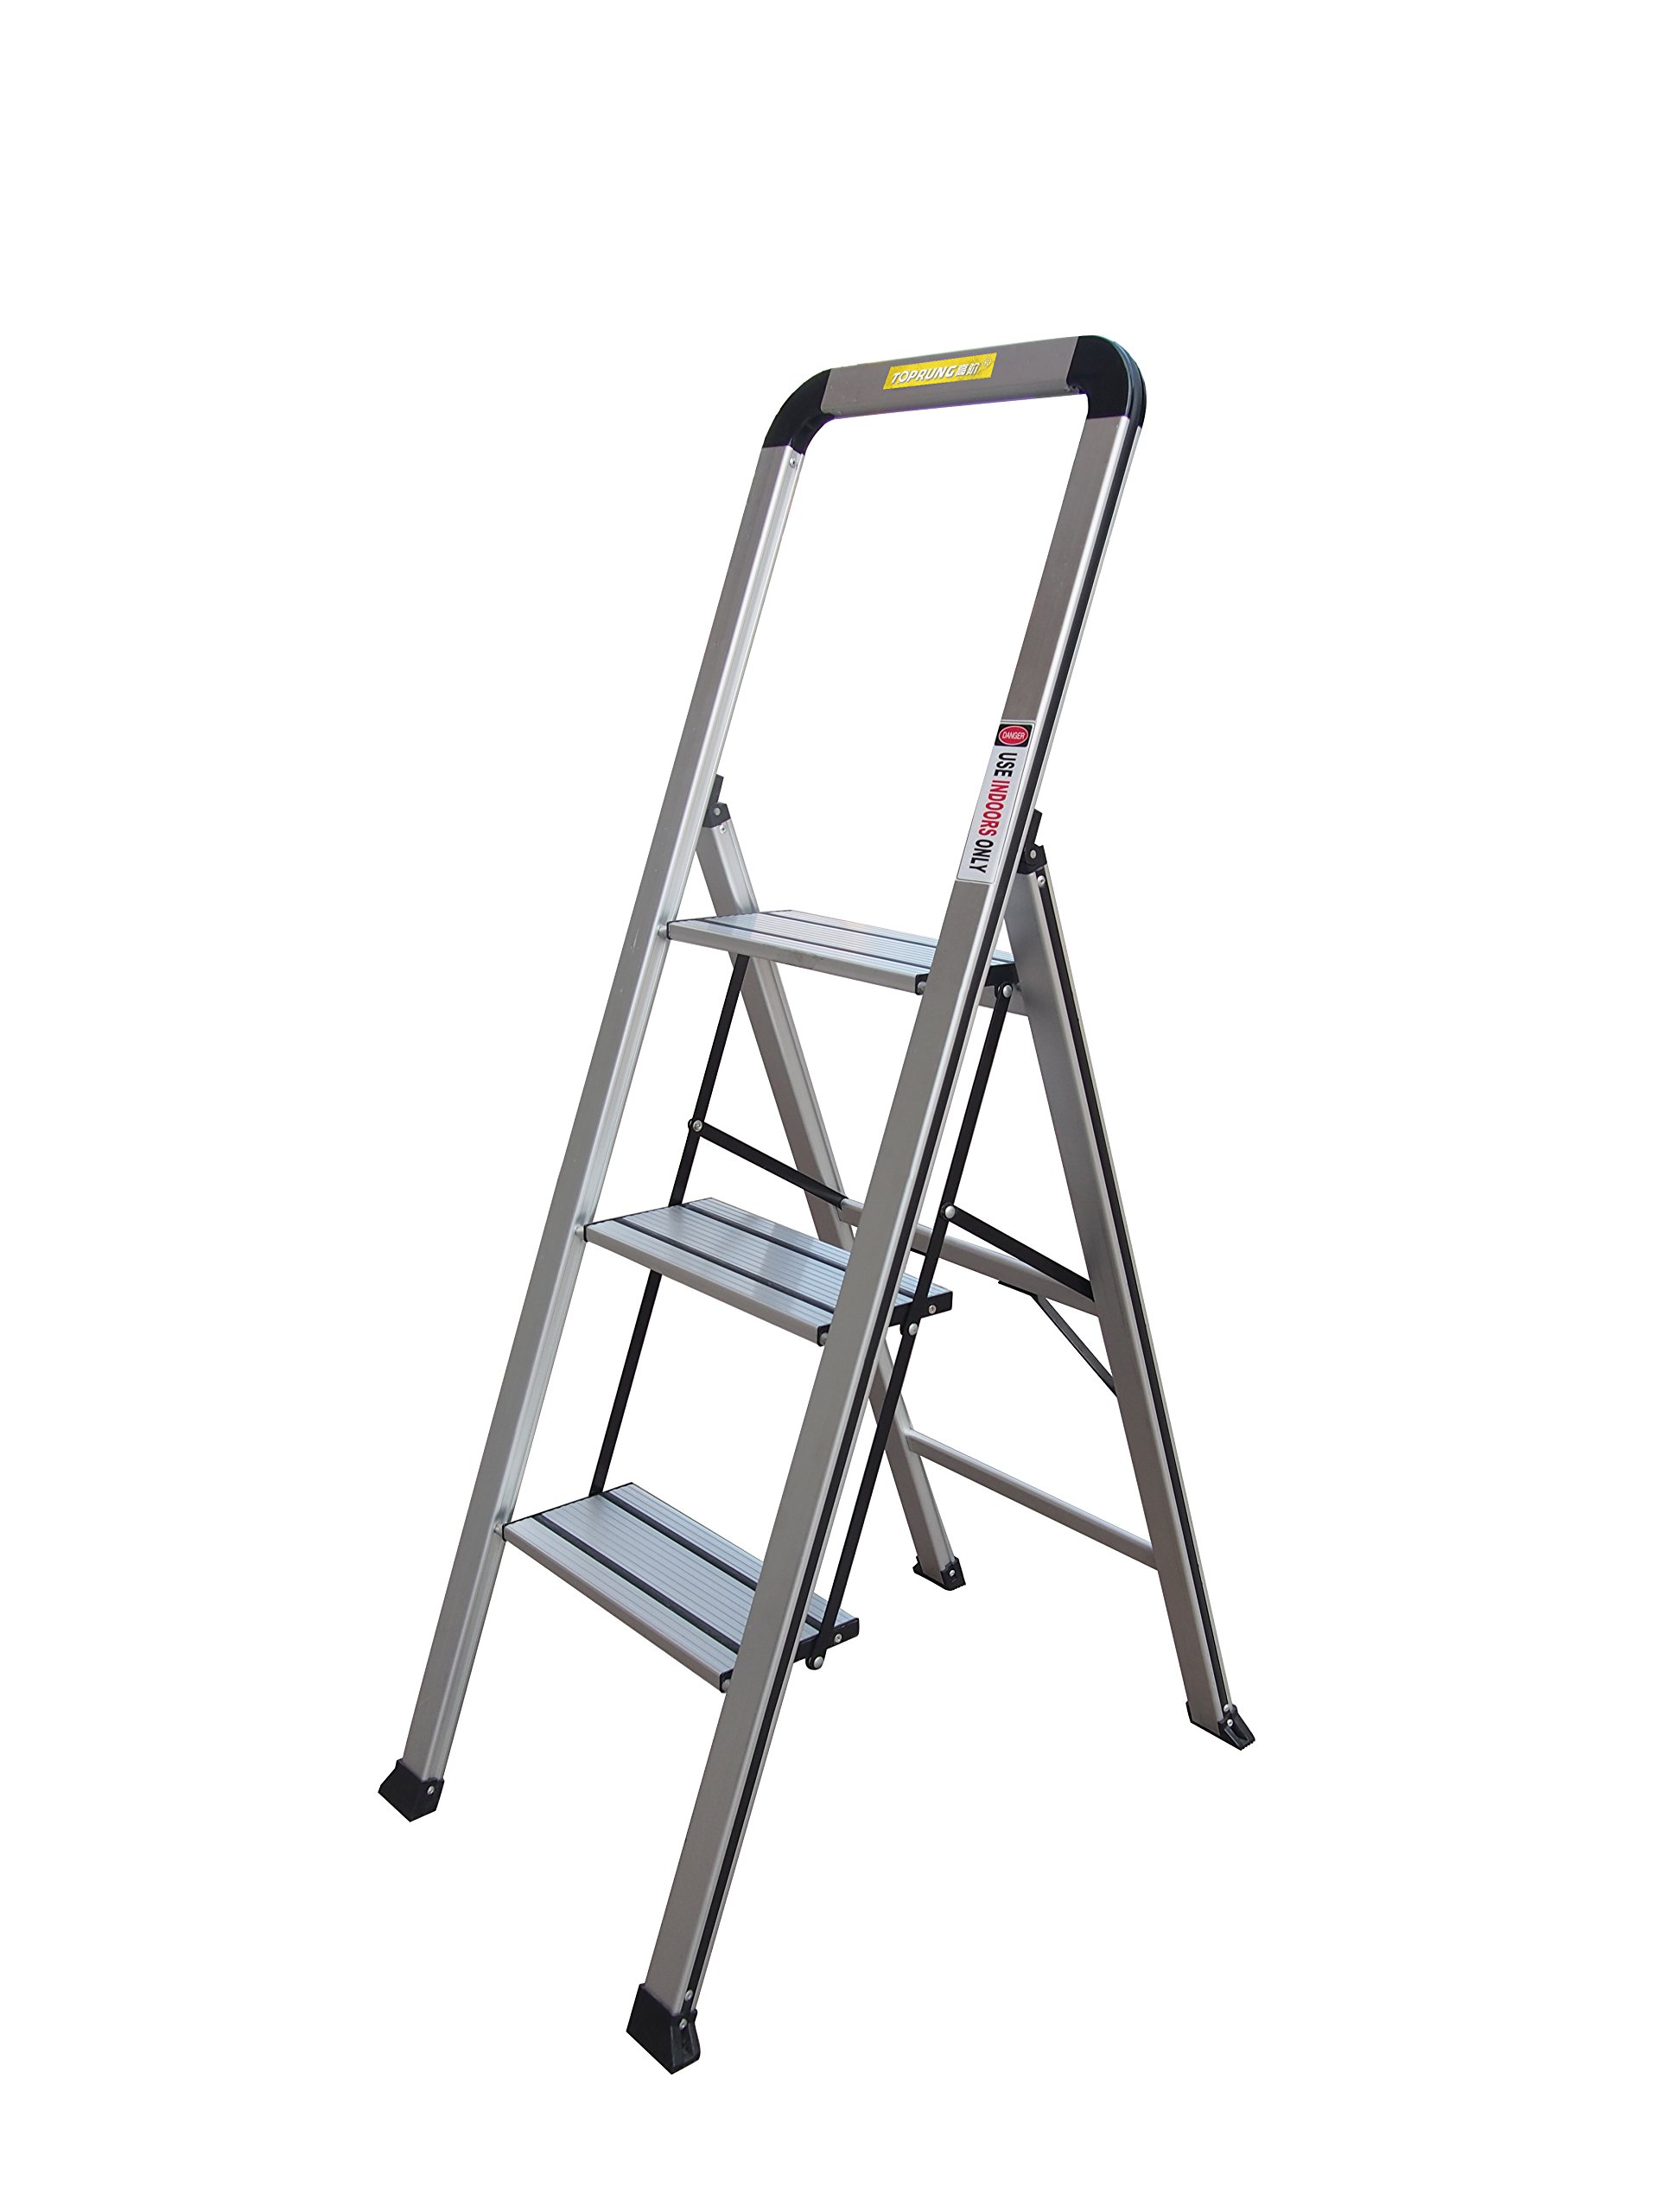 Toprung Lightweight Slim 3-Step Stool Aluminum Ladder Portable Folding Anti-Slip with Rubber Hand Grip, Silver Household Stepladders WP-648